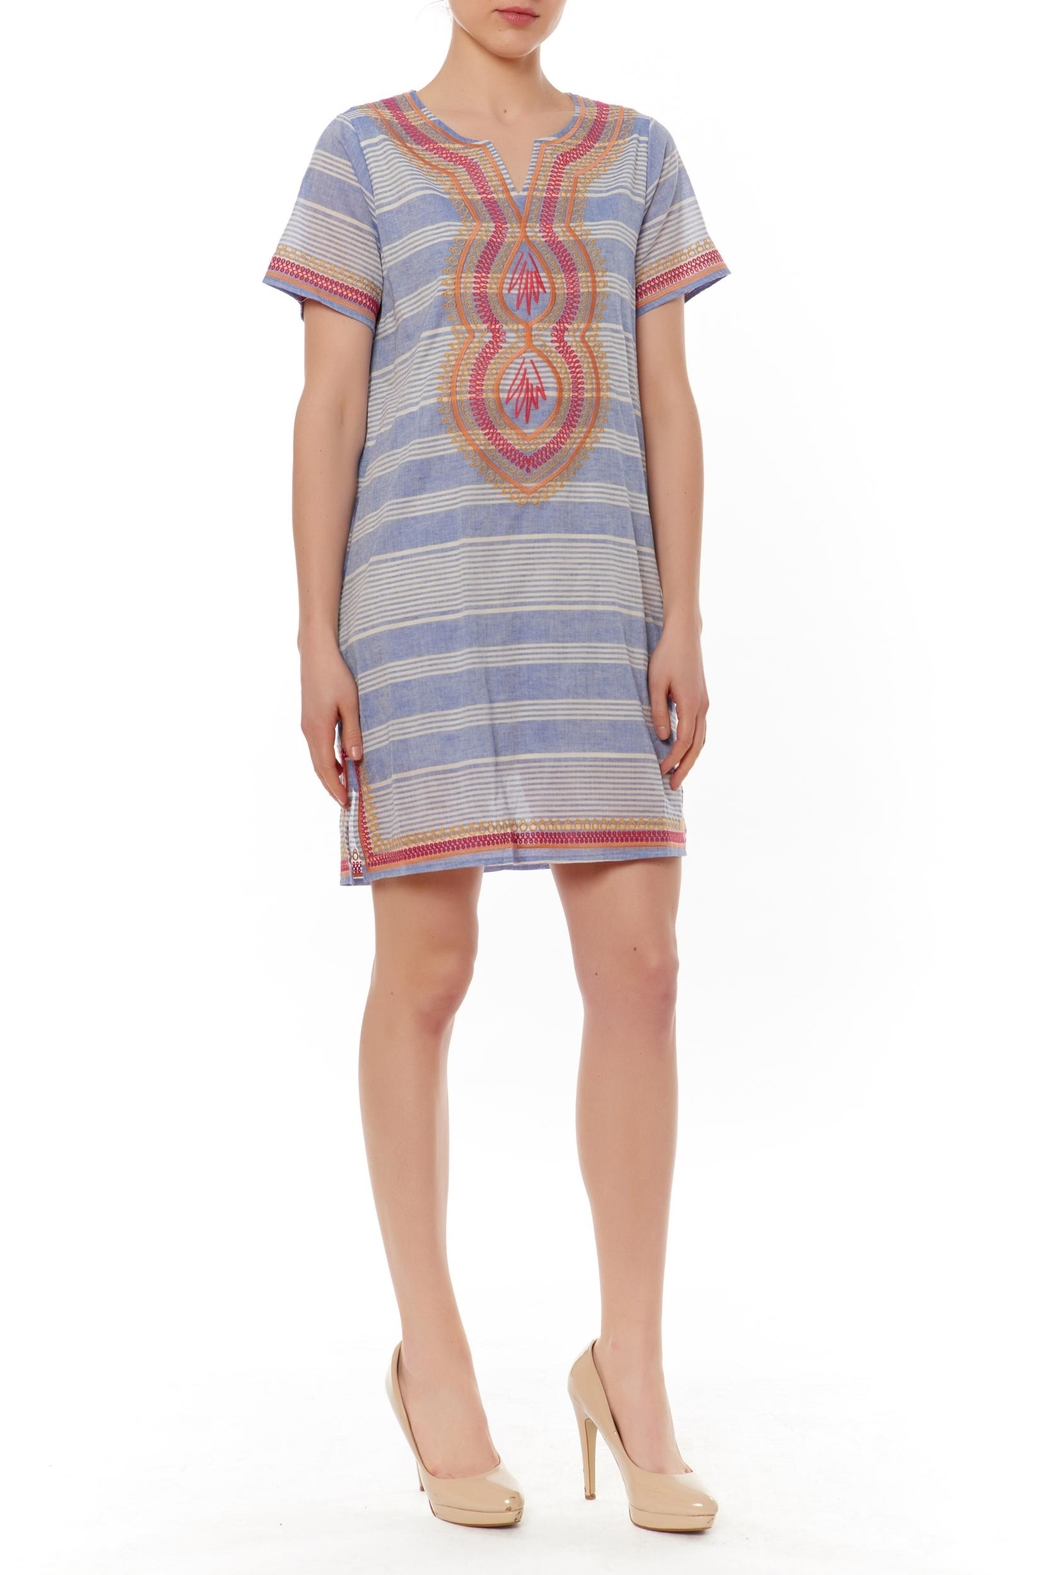 Thml Striped Embellished Shift - Main Image